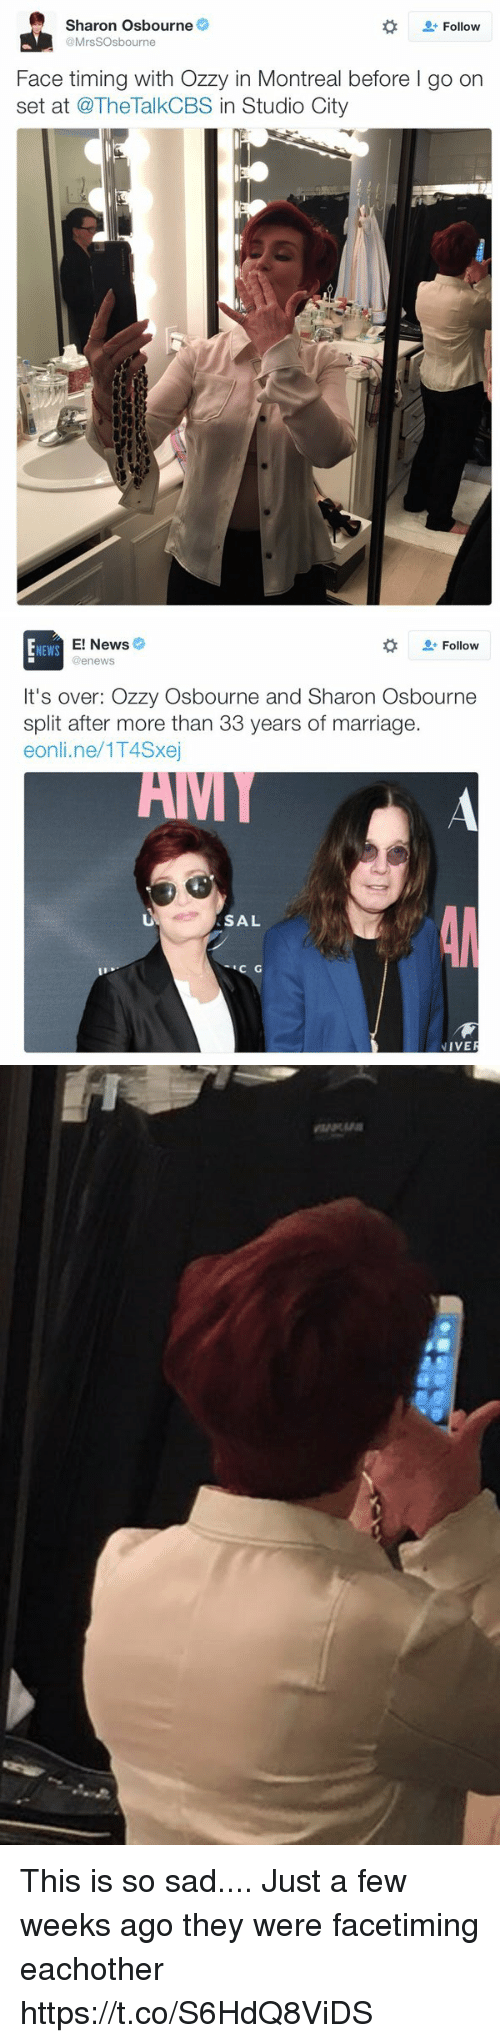 Ozzy Osbourne: Sharon Osbourne  Follow  @MrsSOsbourne  Face timing with Ozzy in Montreal before l go on  set at @TheTalkCBS n Studio City   E! News  Follow  NEWS  @enews  It's over: Ozzy Osbourne and Sharon Osbourne  split after more than 33 years of marriage.  eonline/1T4Sxej  AM  SAL  C G  IVE This is so sad.... Just a few weeks ago they were facetiming eachother https://t.co/S6HdQ8ViDS